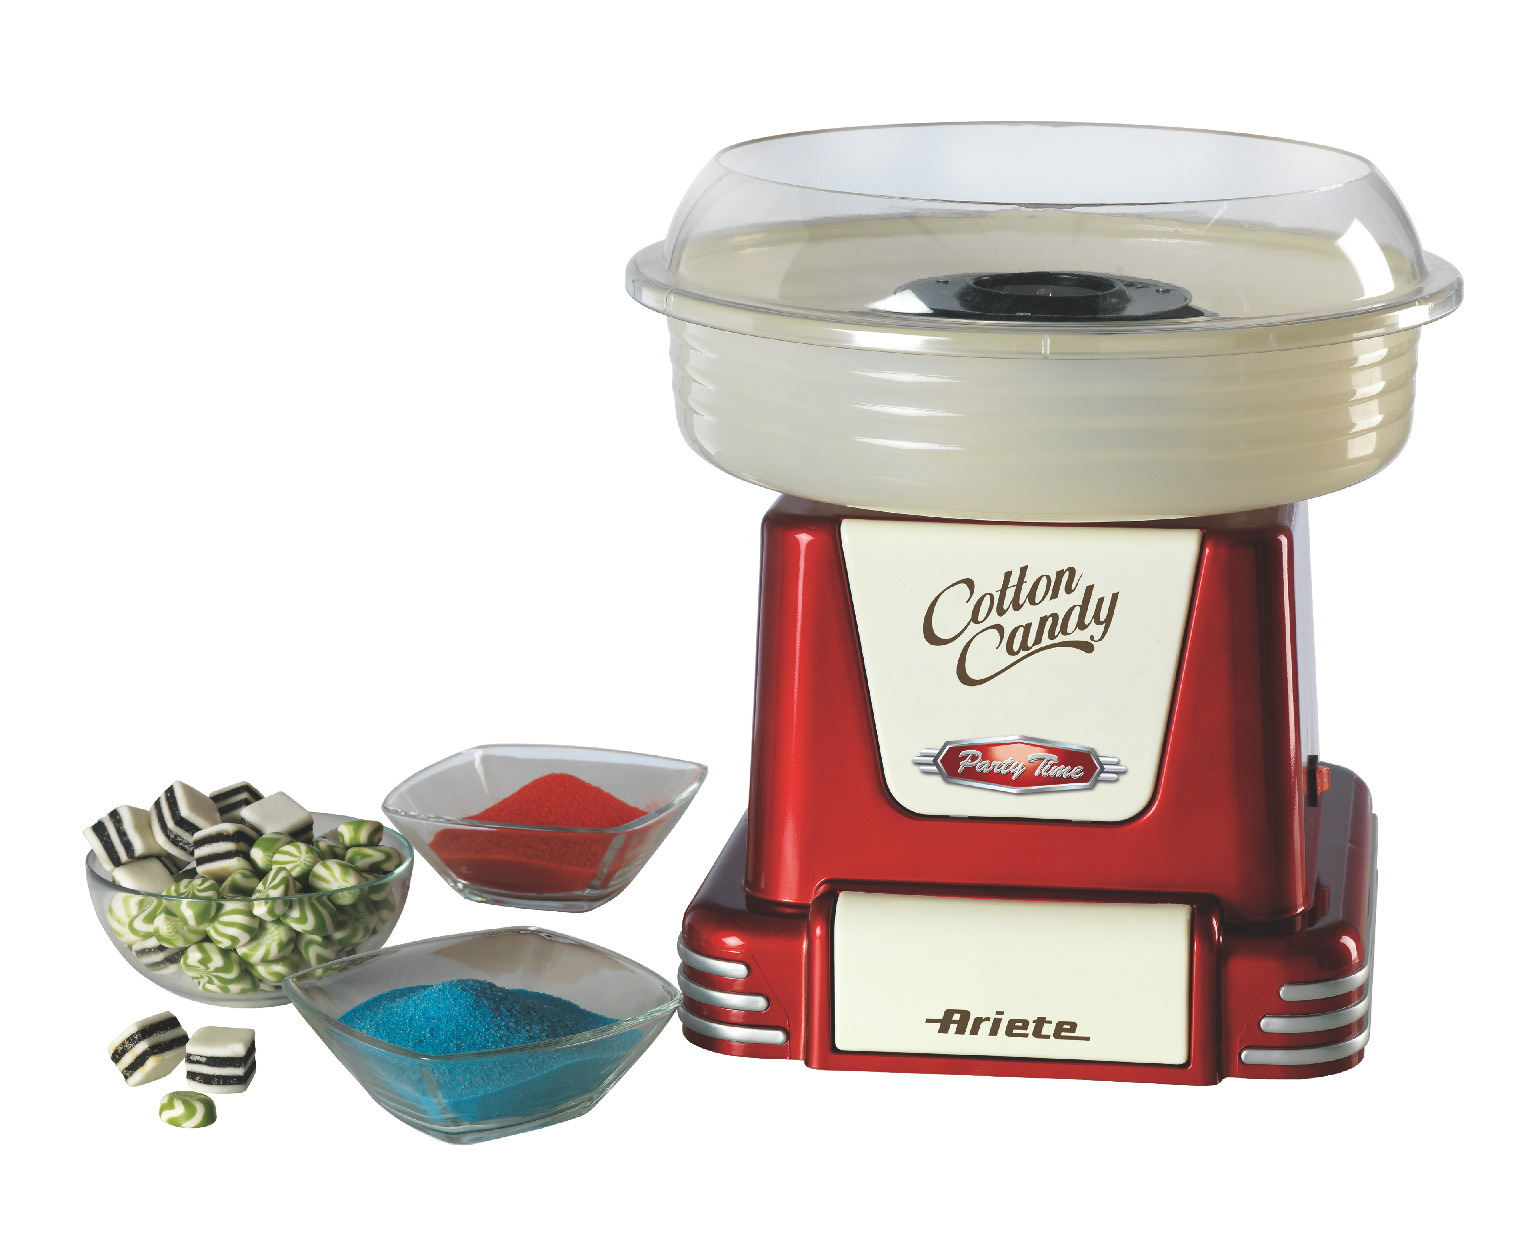 Ariete 2971/1 Cotton Candy Party Time